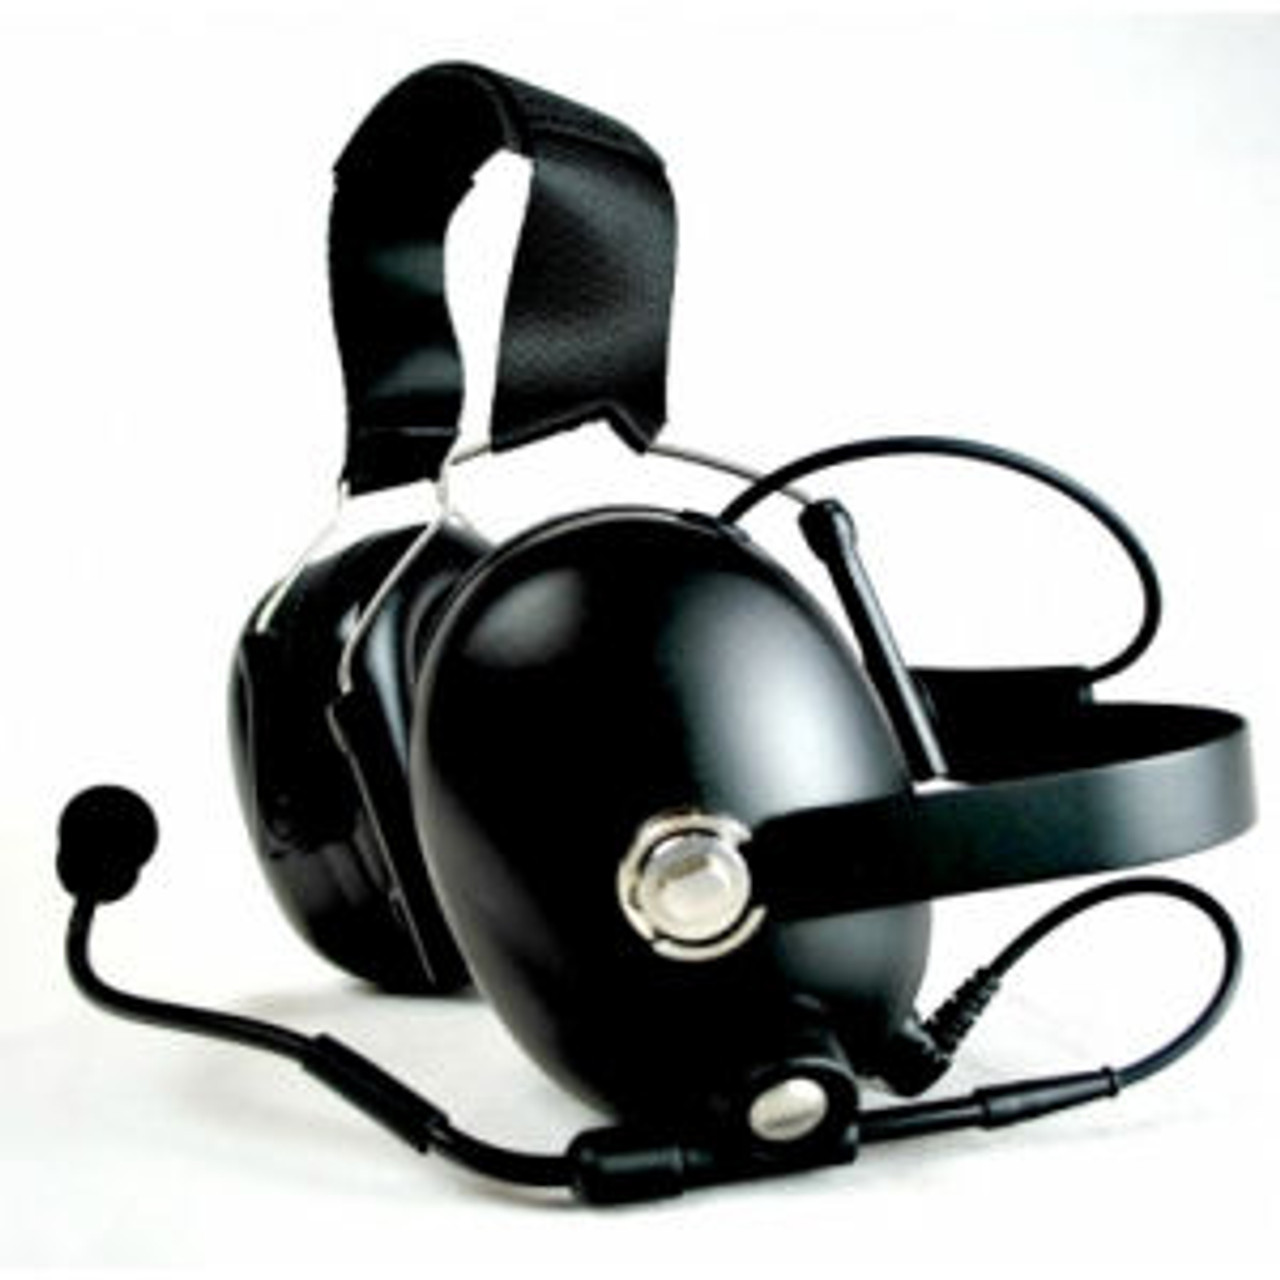 Bendix King EPH Noise Canceling Double Muff Behind The Head Headset